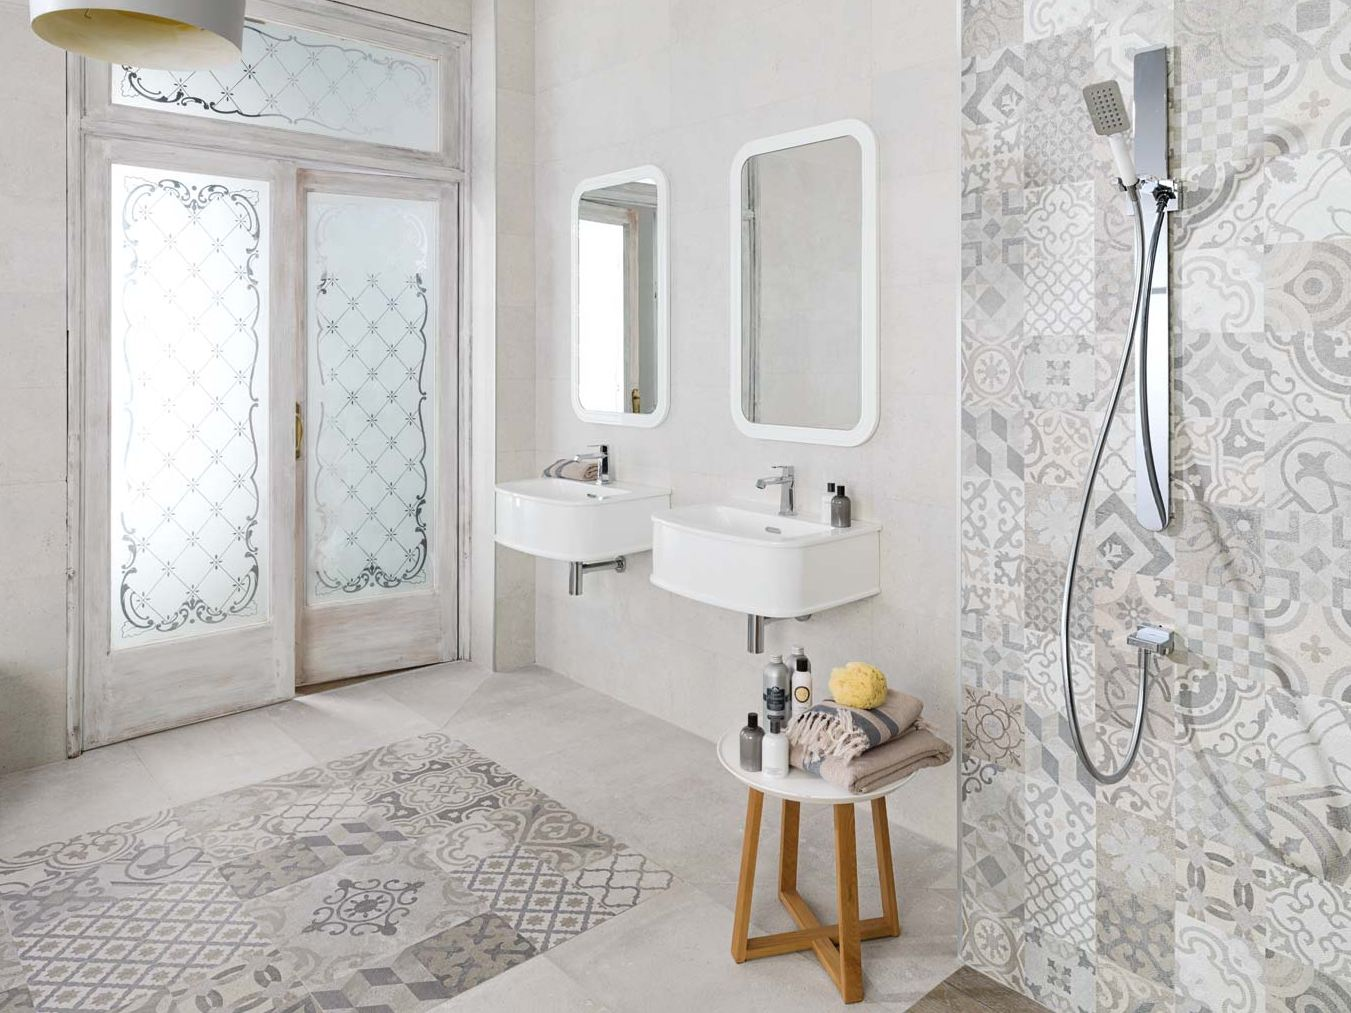 Wall/floor tiles STON-KER® - DOVER STON-KER® Collection By Porcelanosa